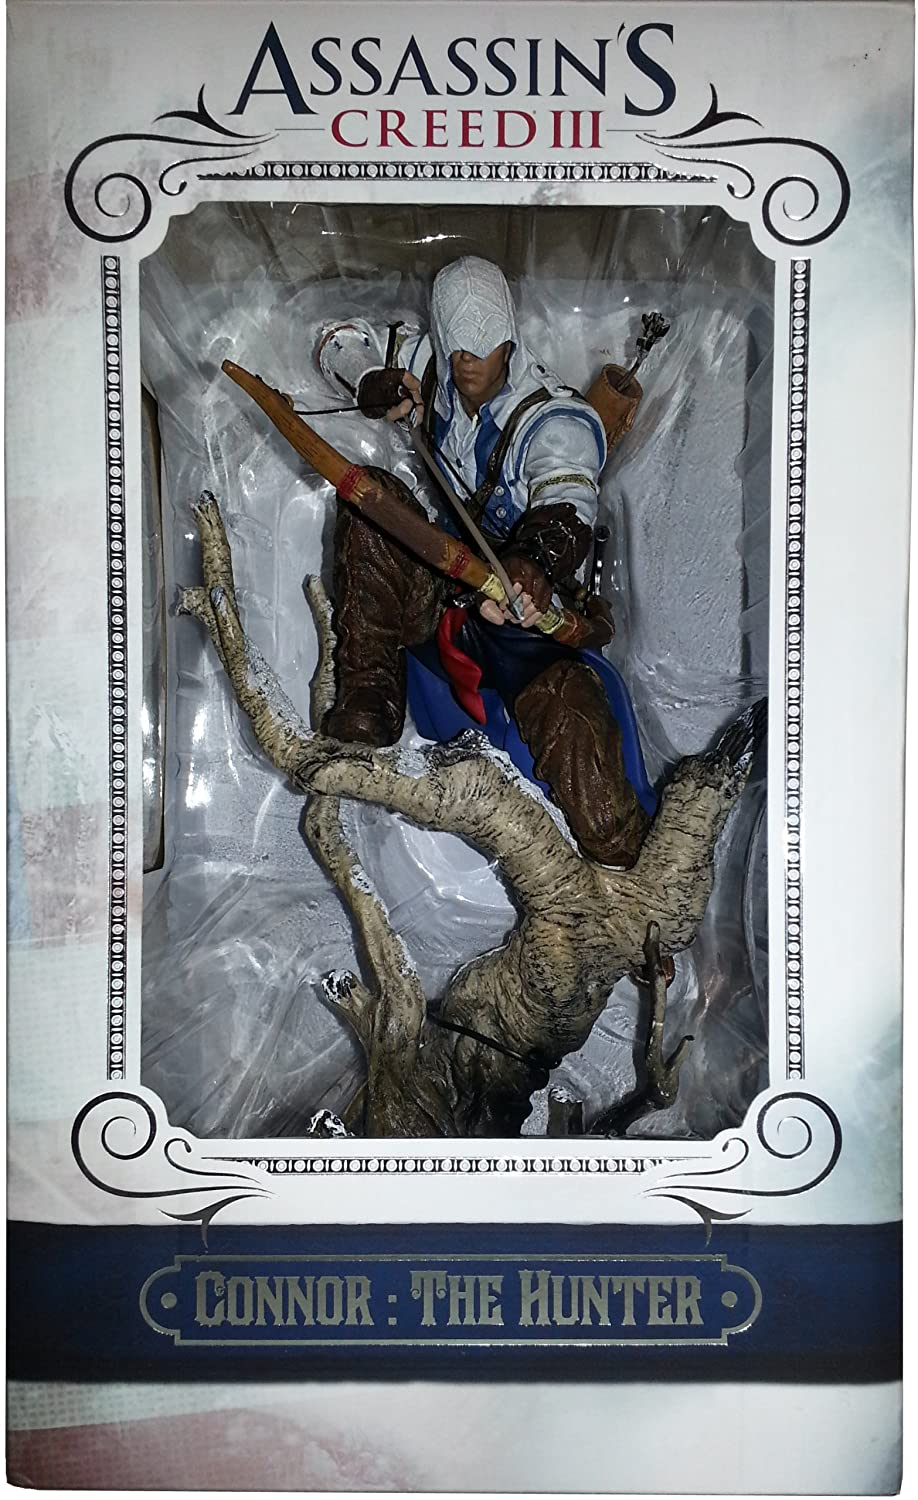 Assassin's Creed 3 - CONNOR Figure - 9 inch PVC [Used]